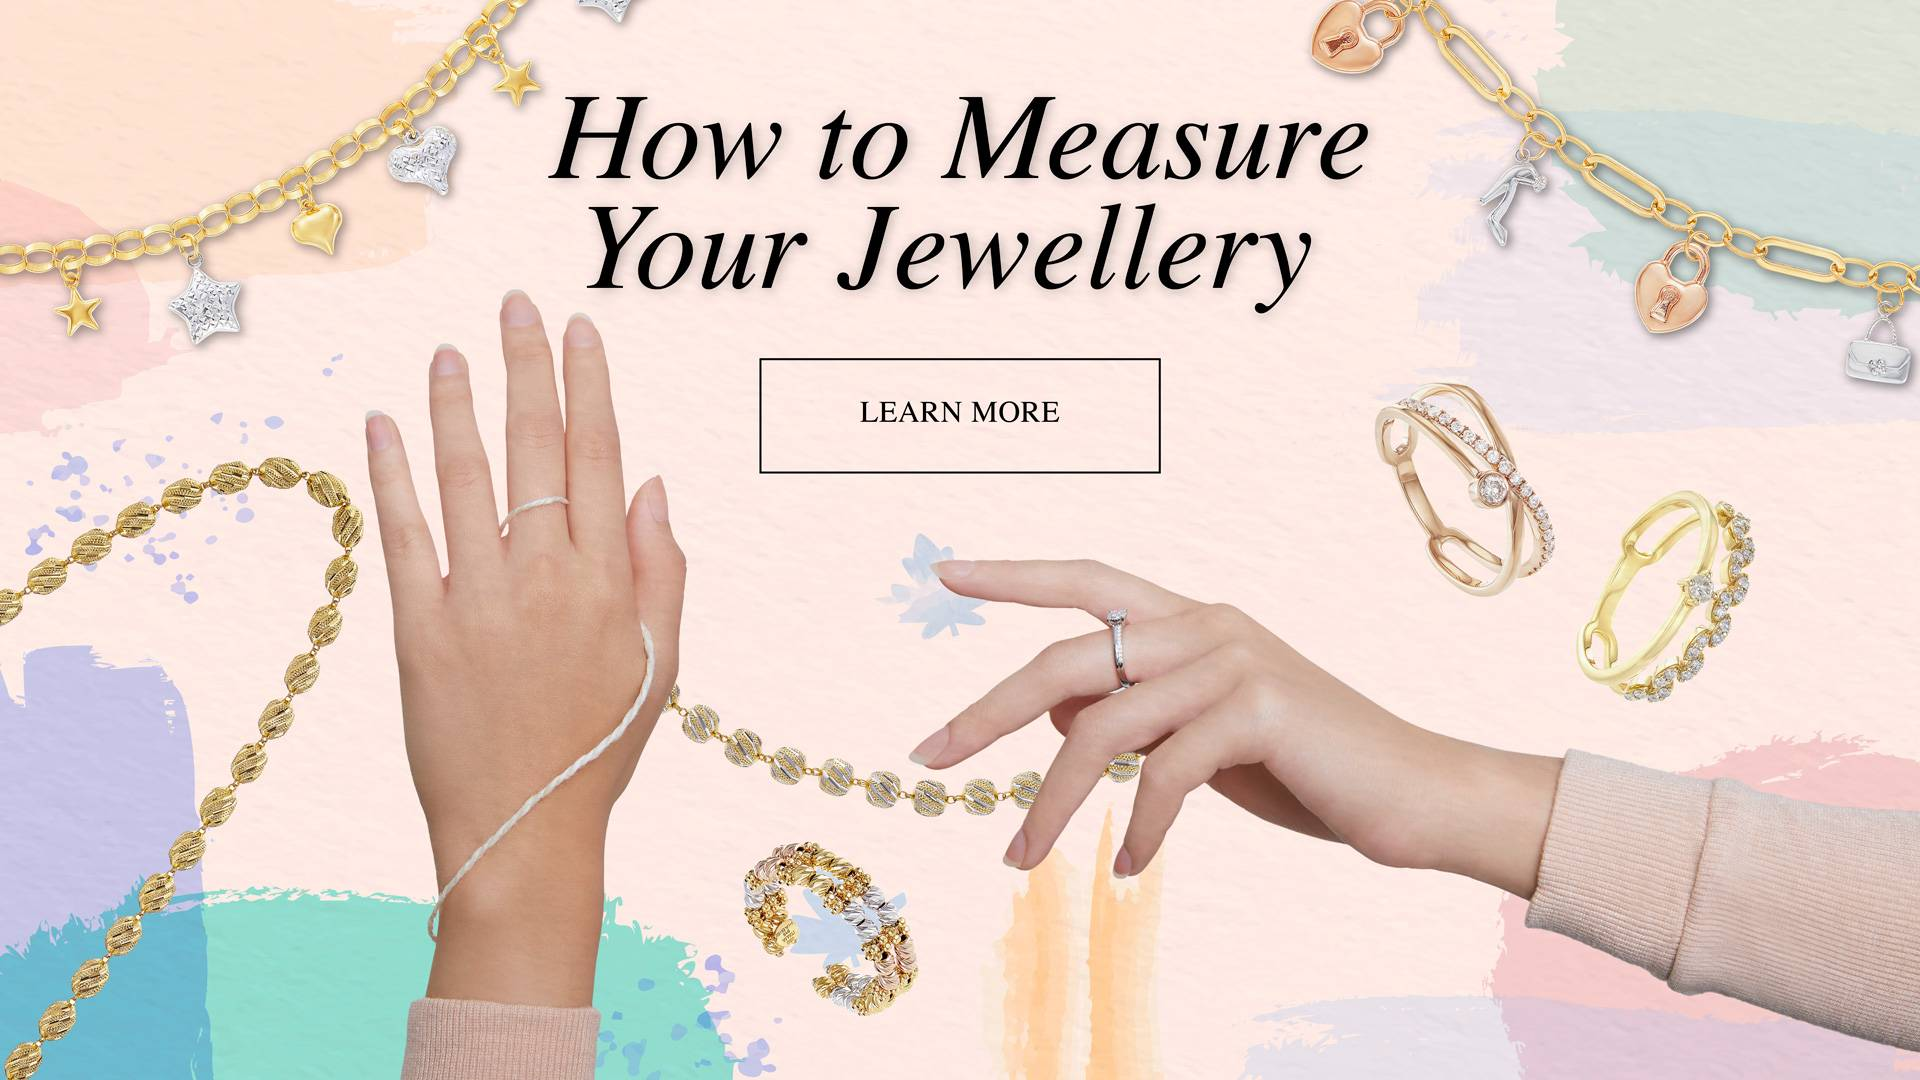 How to Measure Your Jewelry